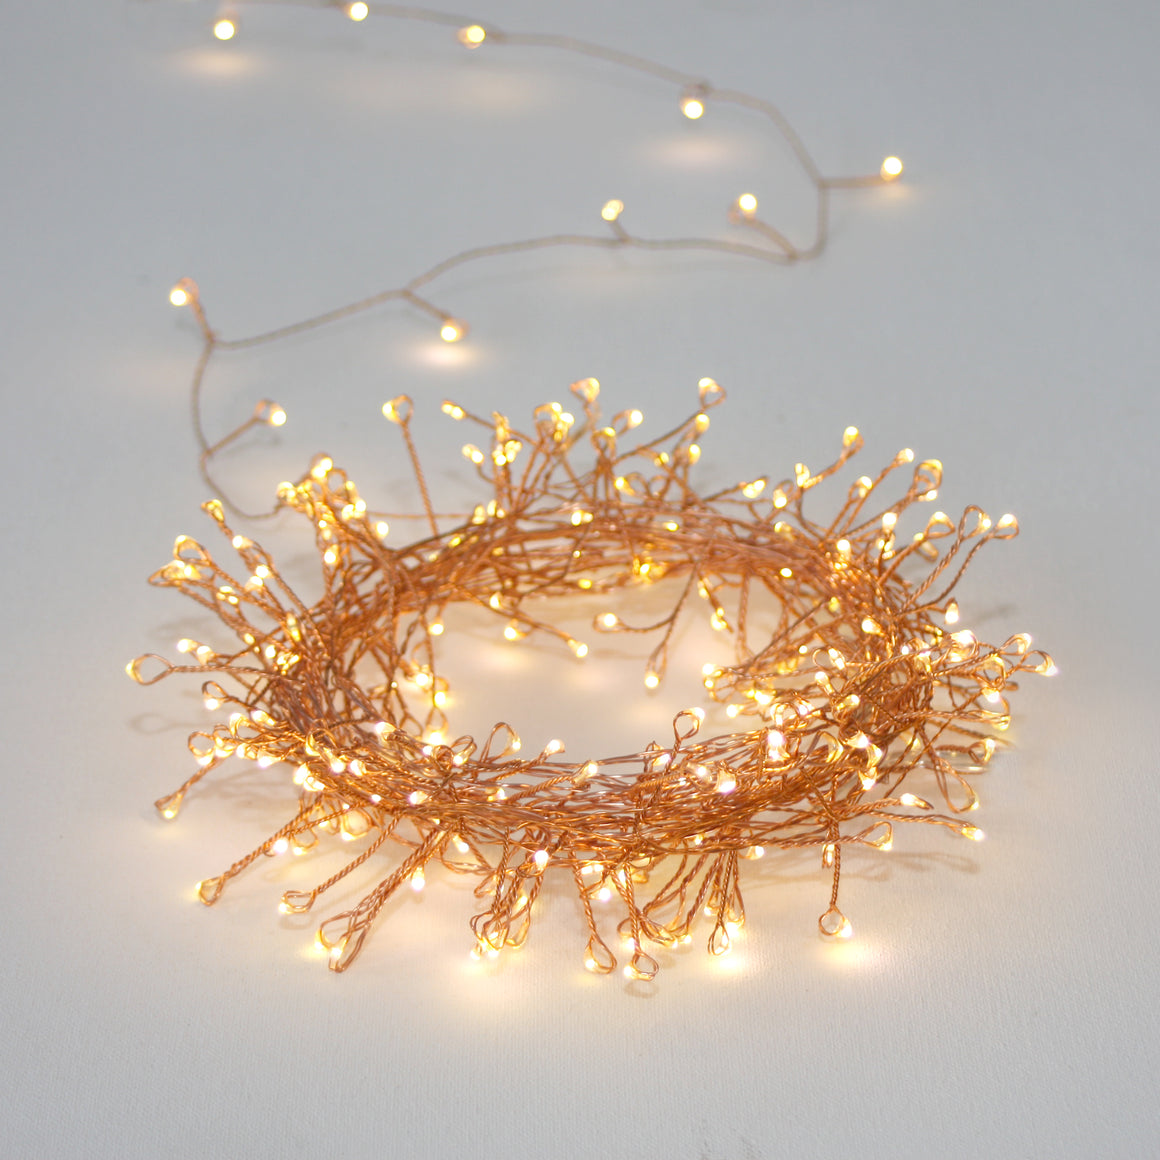 Copper Cluster Lights 3 metres